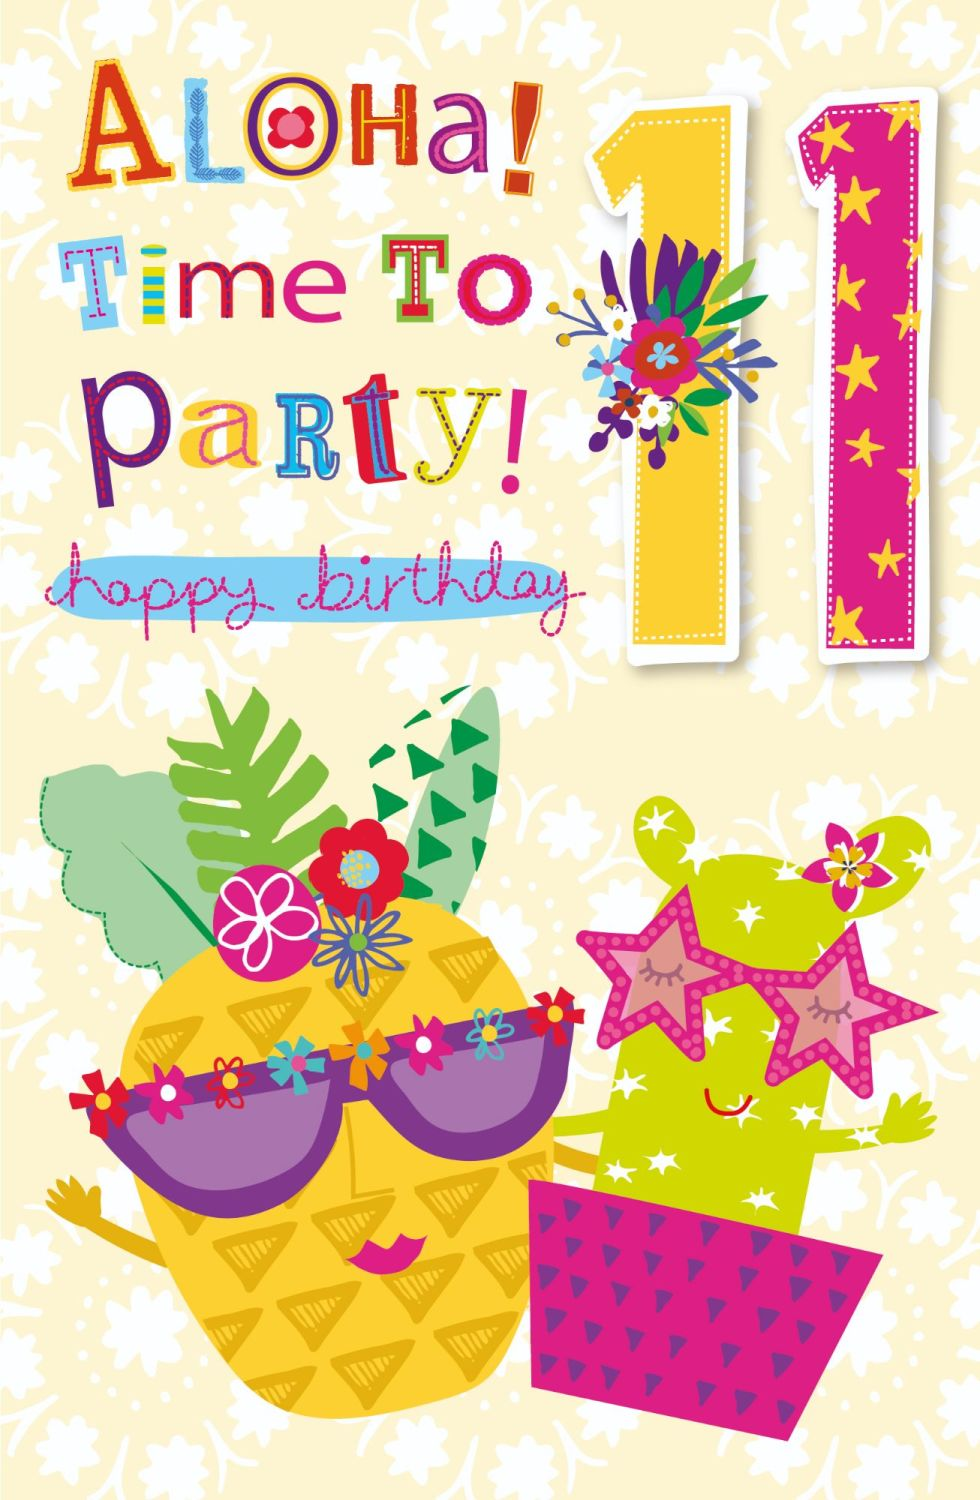 11th Birthday Card - ALOHA Time To PARTY - Happy BIRTHDAY Card - TROPICAL S